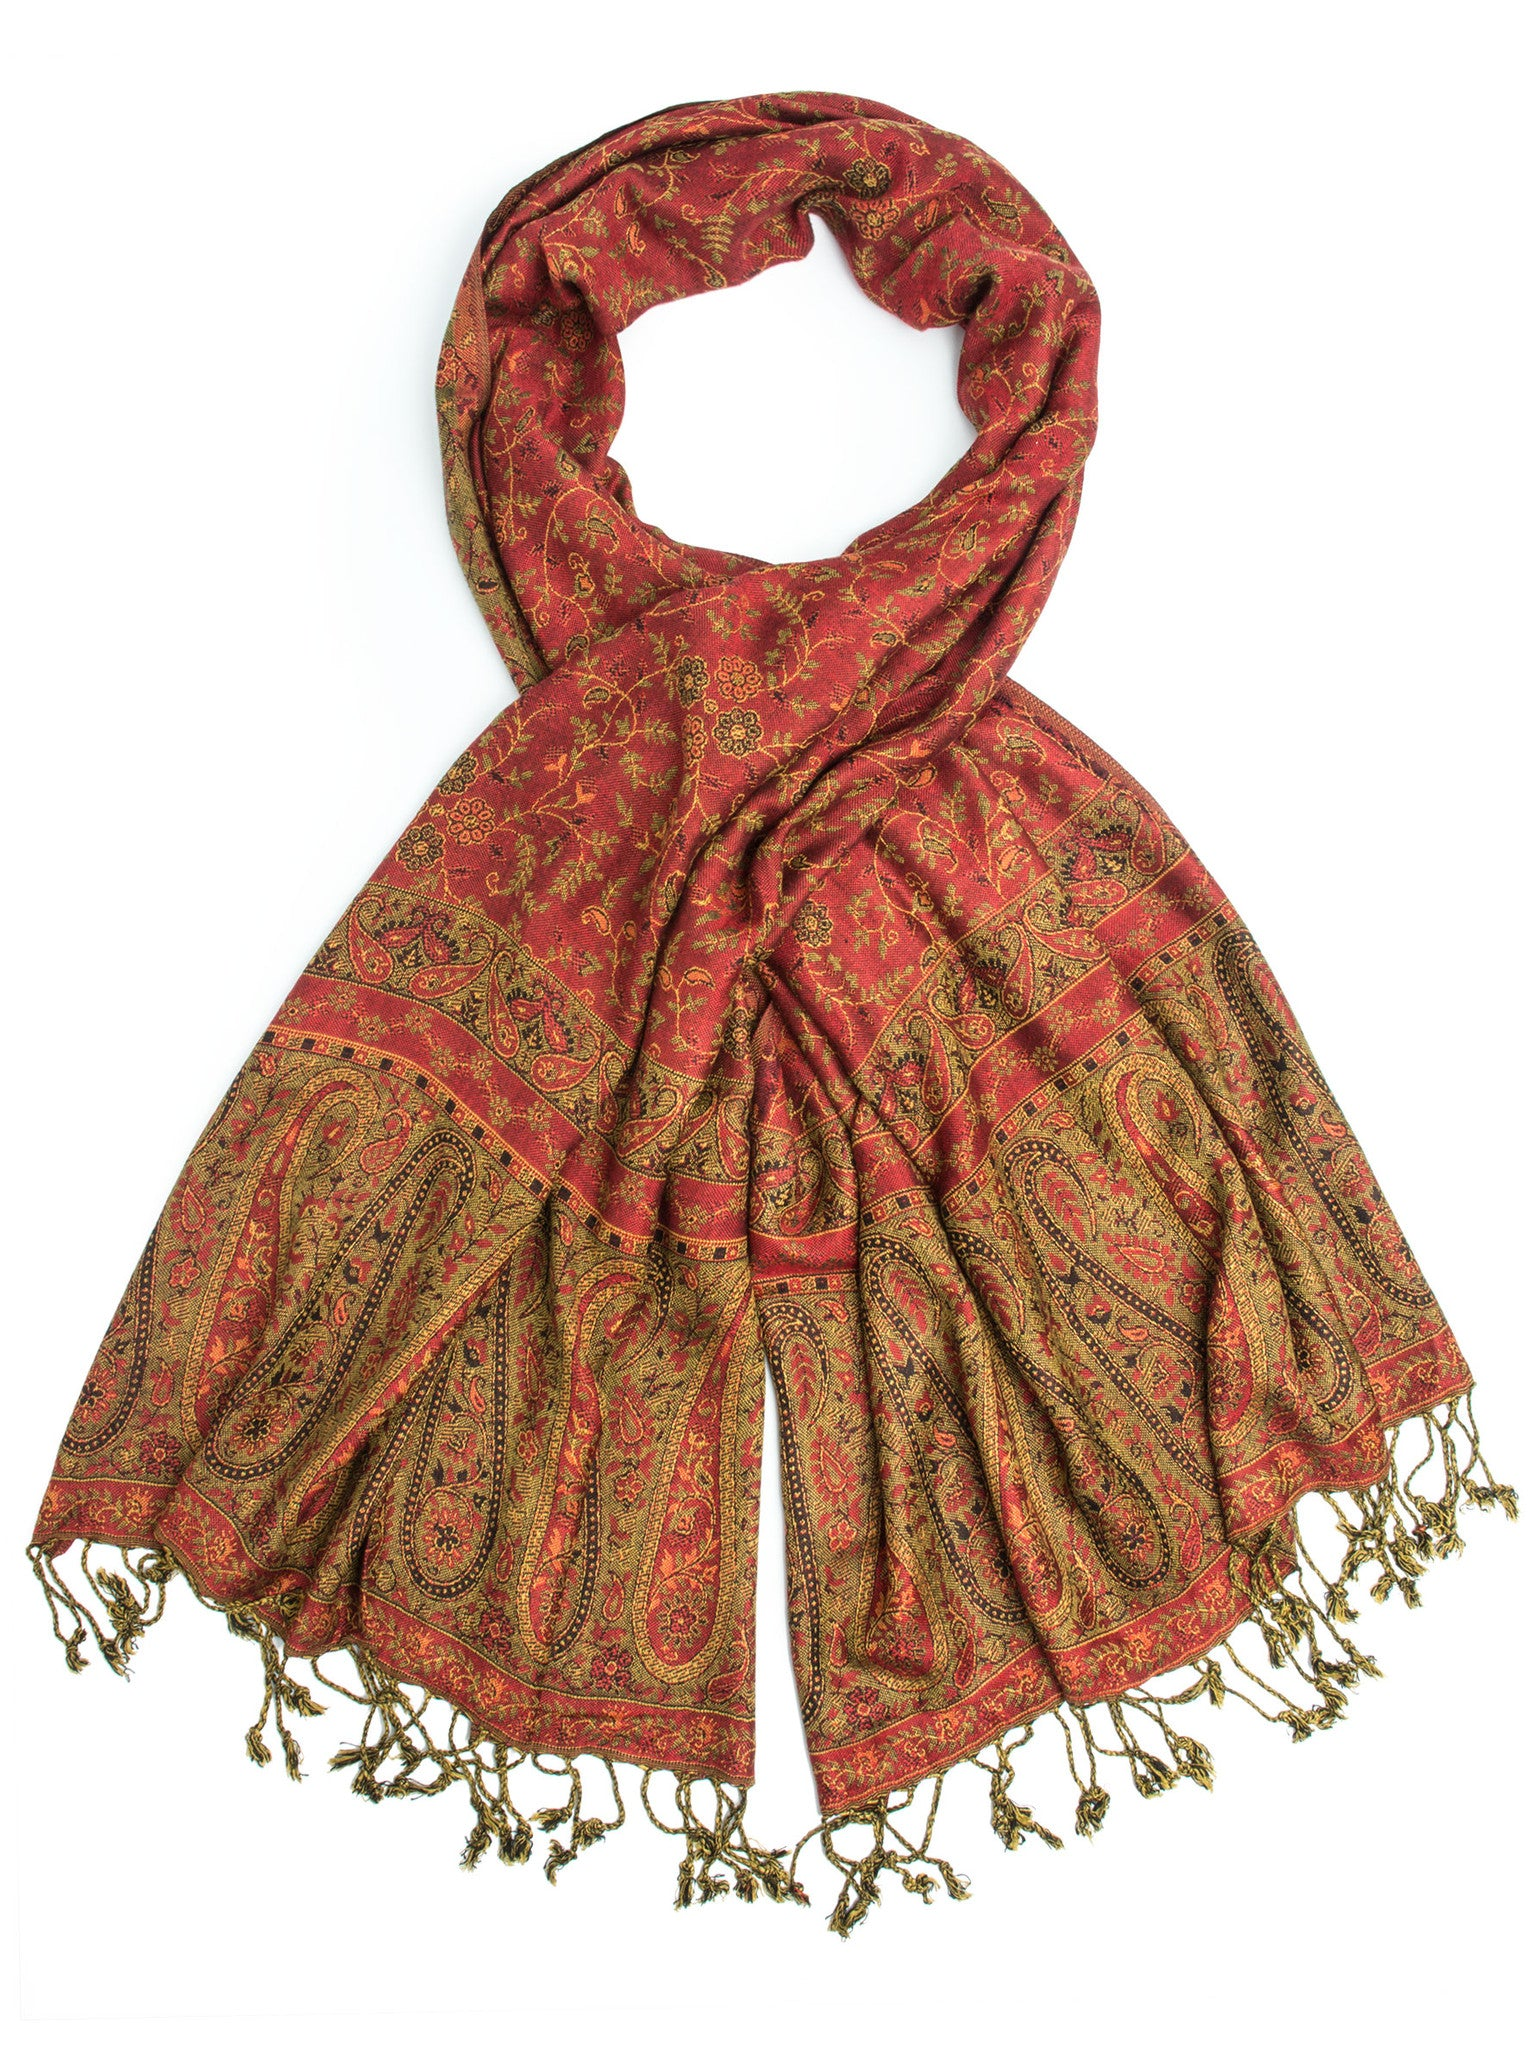 Scarves - Bhayana Reversible Cashmere Silk Pashmina Scarf, hand made in India -(Red/Olive) Bohomonde  - 3